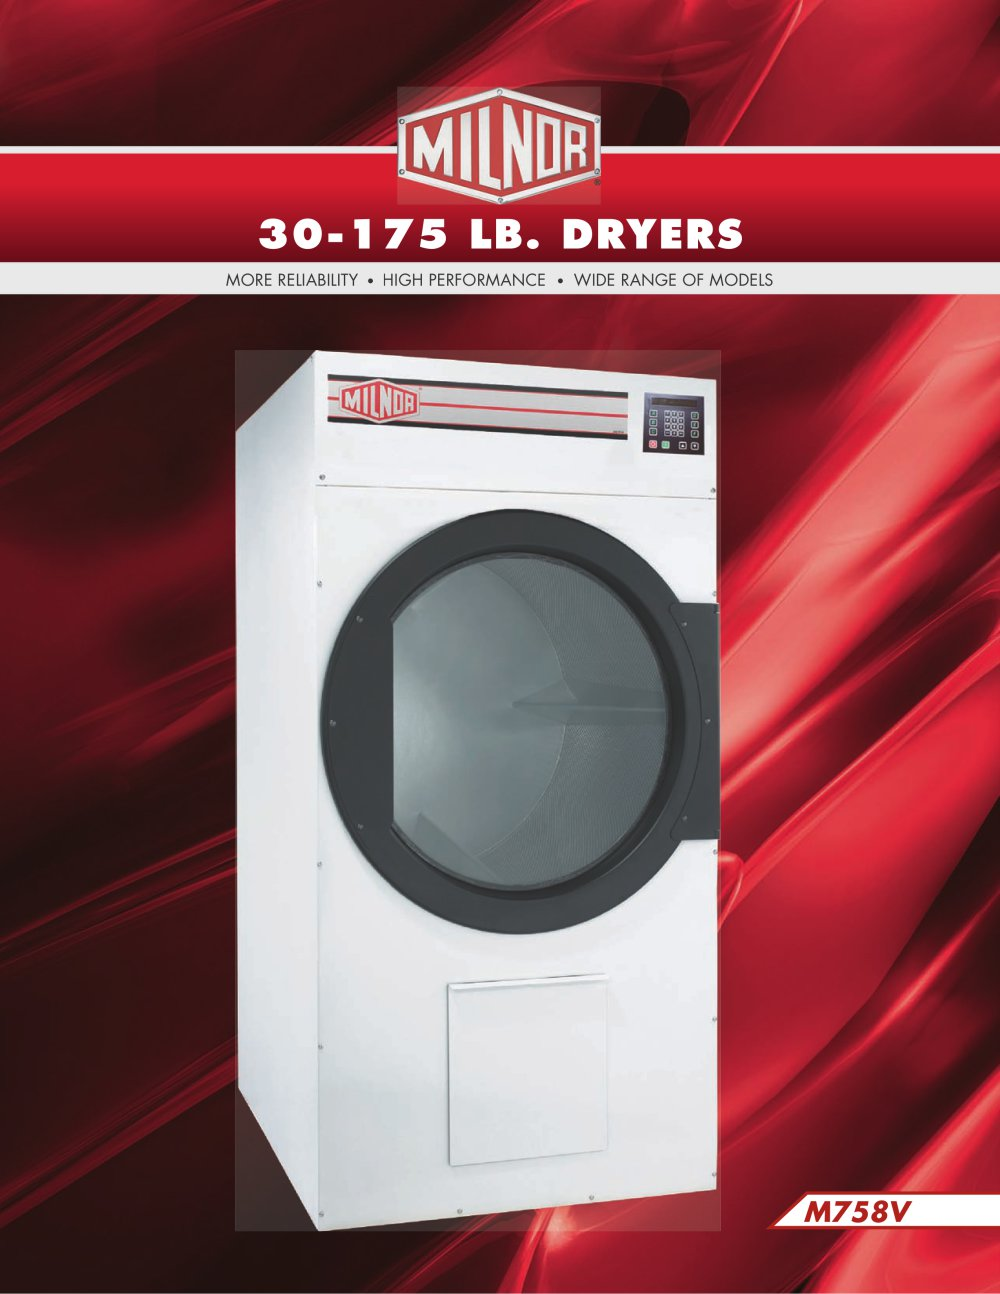 M30-175 Dryers - Milnor - PDF Catalogue | Technical ... on